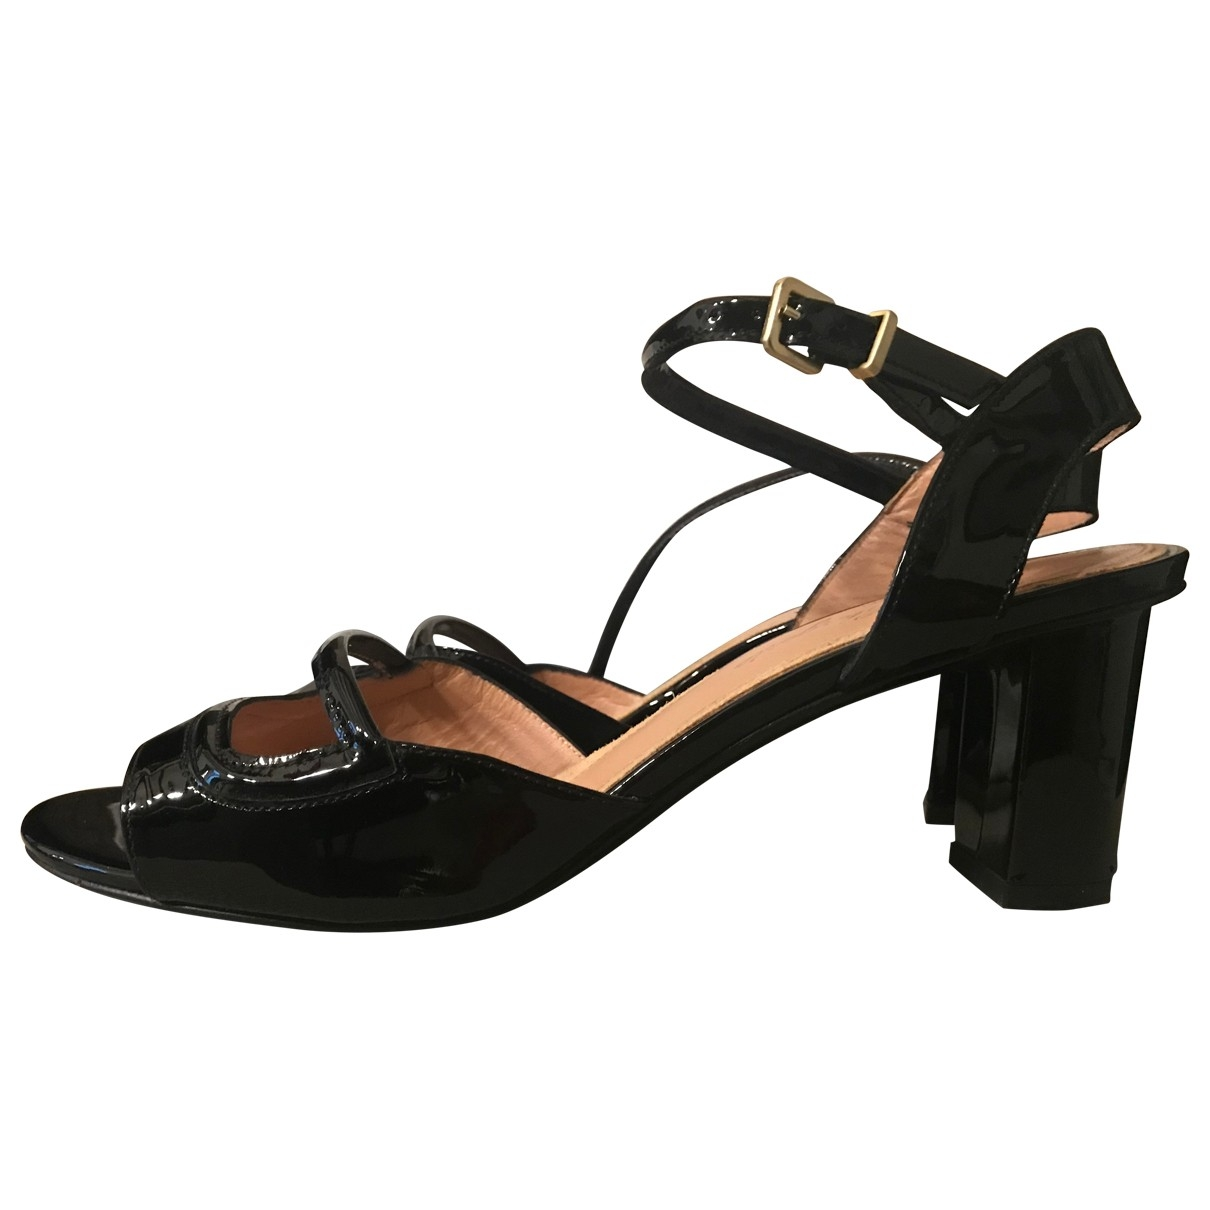 Robert Clergerie \N Black Patent leather Sandals for Women 38.5 EU